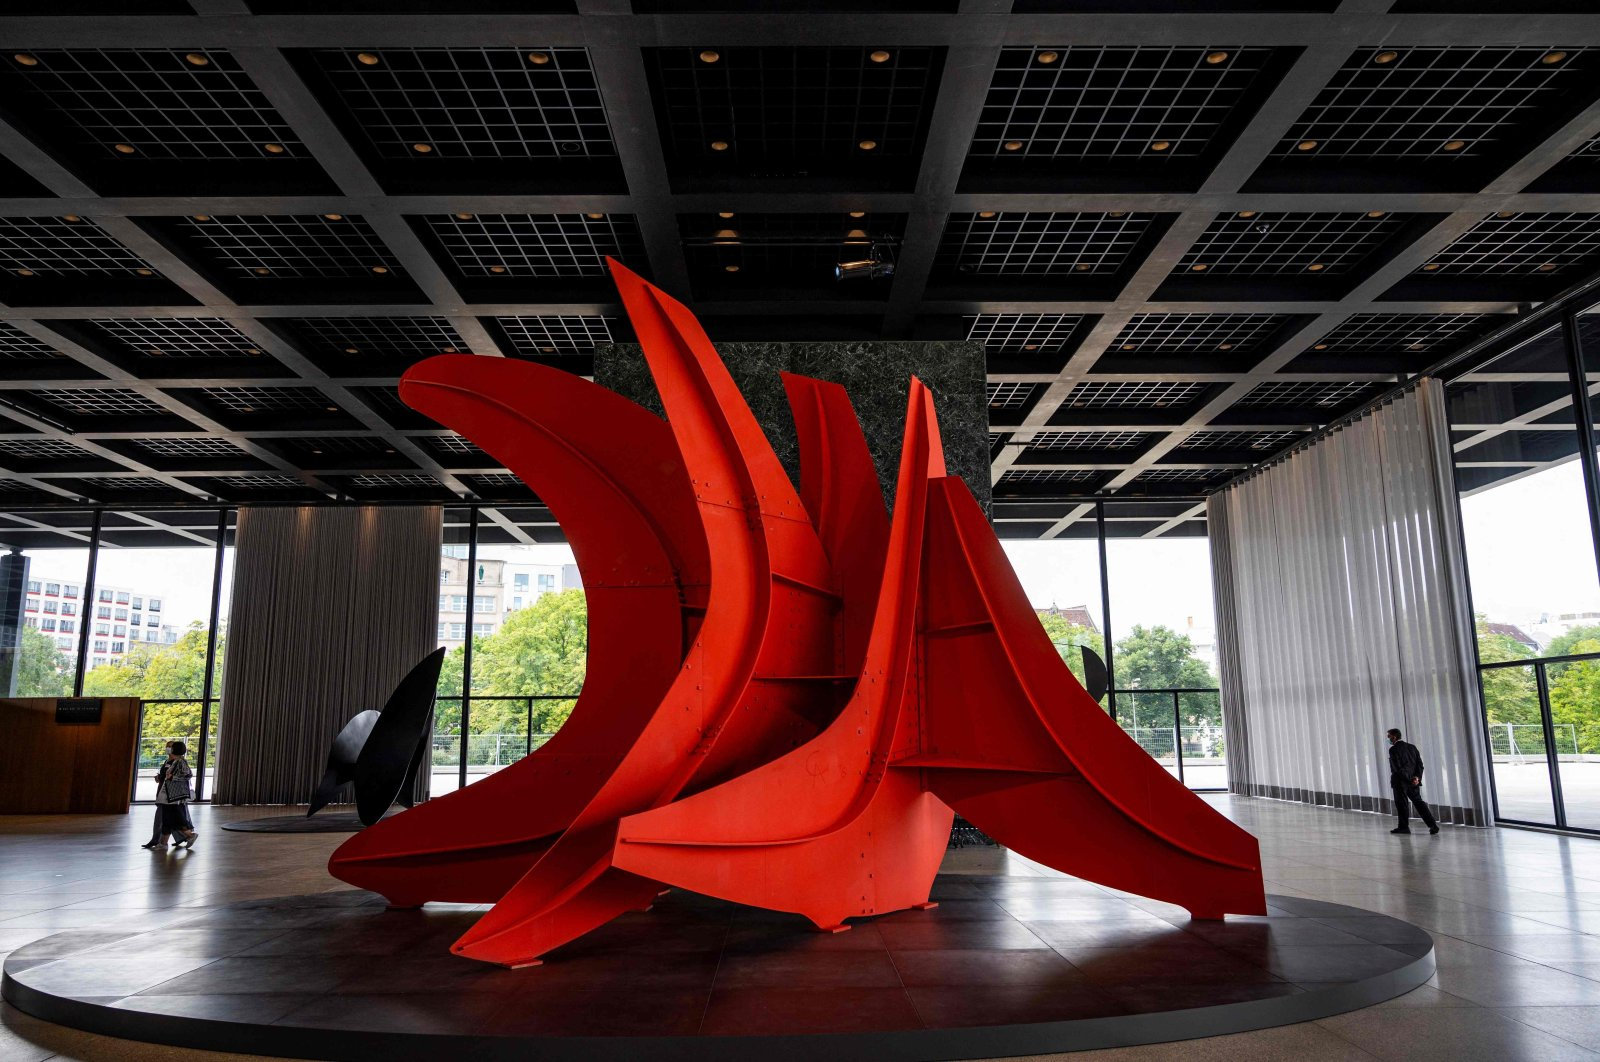 """Visitors walk past U.S. sculptor Alexander Calder's work """"Five Swords"""" during a press preview of the exhibition """"Alexander Calder Minimal/Maximal"""" at the Neue Nationalgalerie (New National Gallery) museum, on Aug. 18, 2021, in Berlin. (AFP Photo)"""